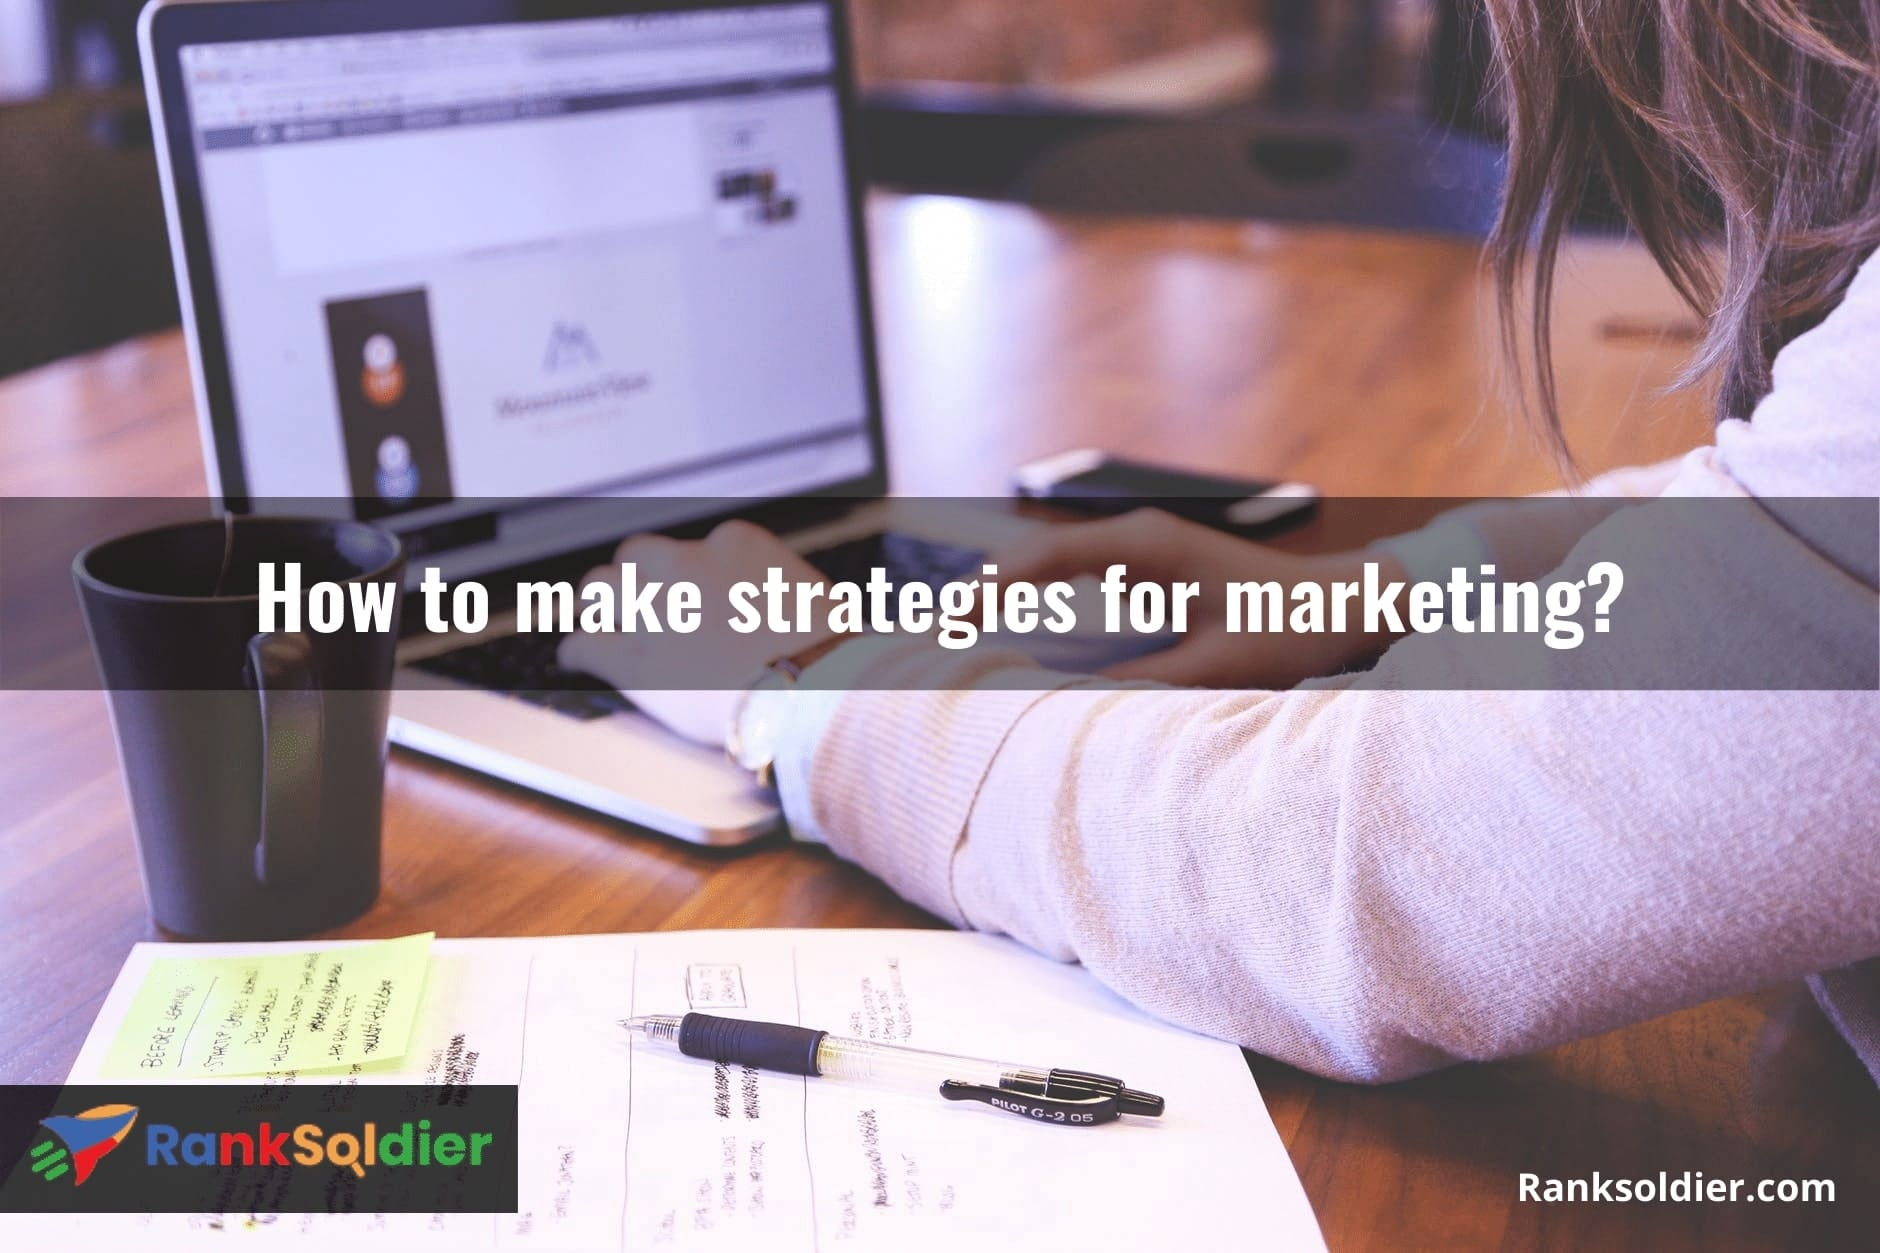 How to make strategies for marketing